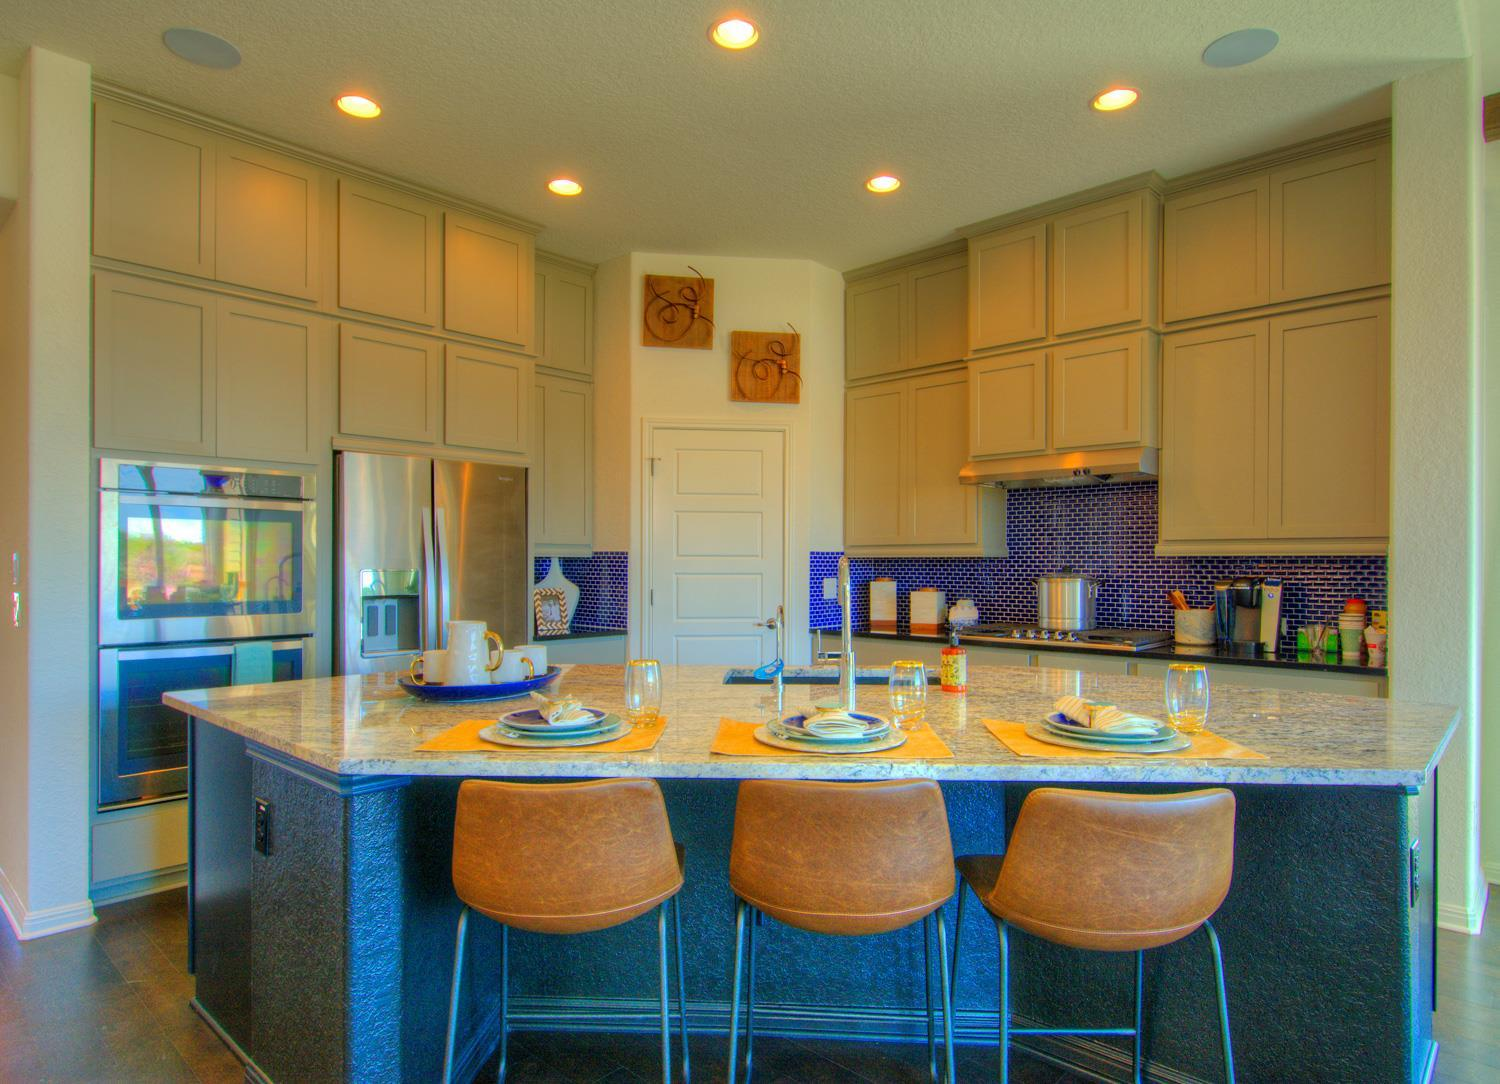 Kitchen featured in the Roma Weston Oaks By Sitterle Homes in San Antonio, TX